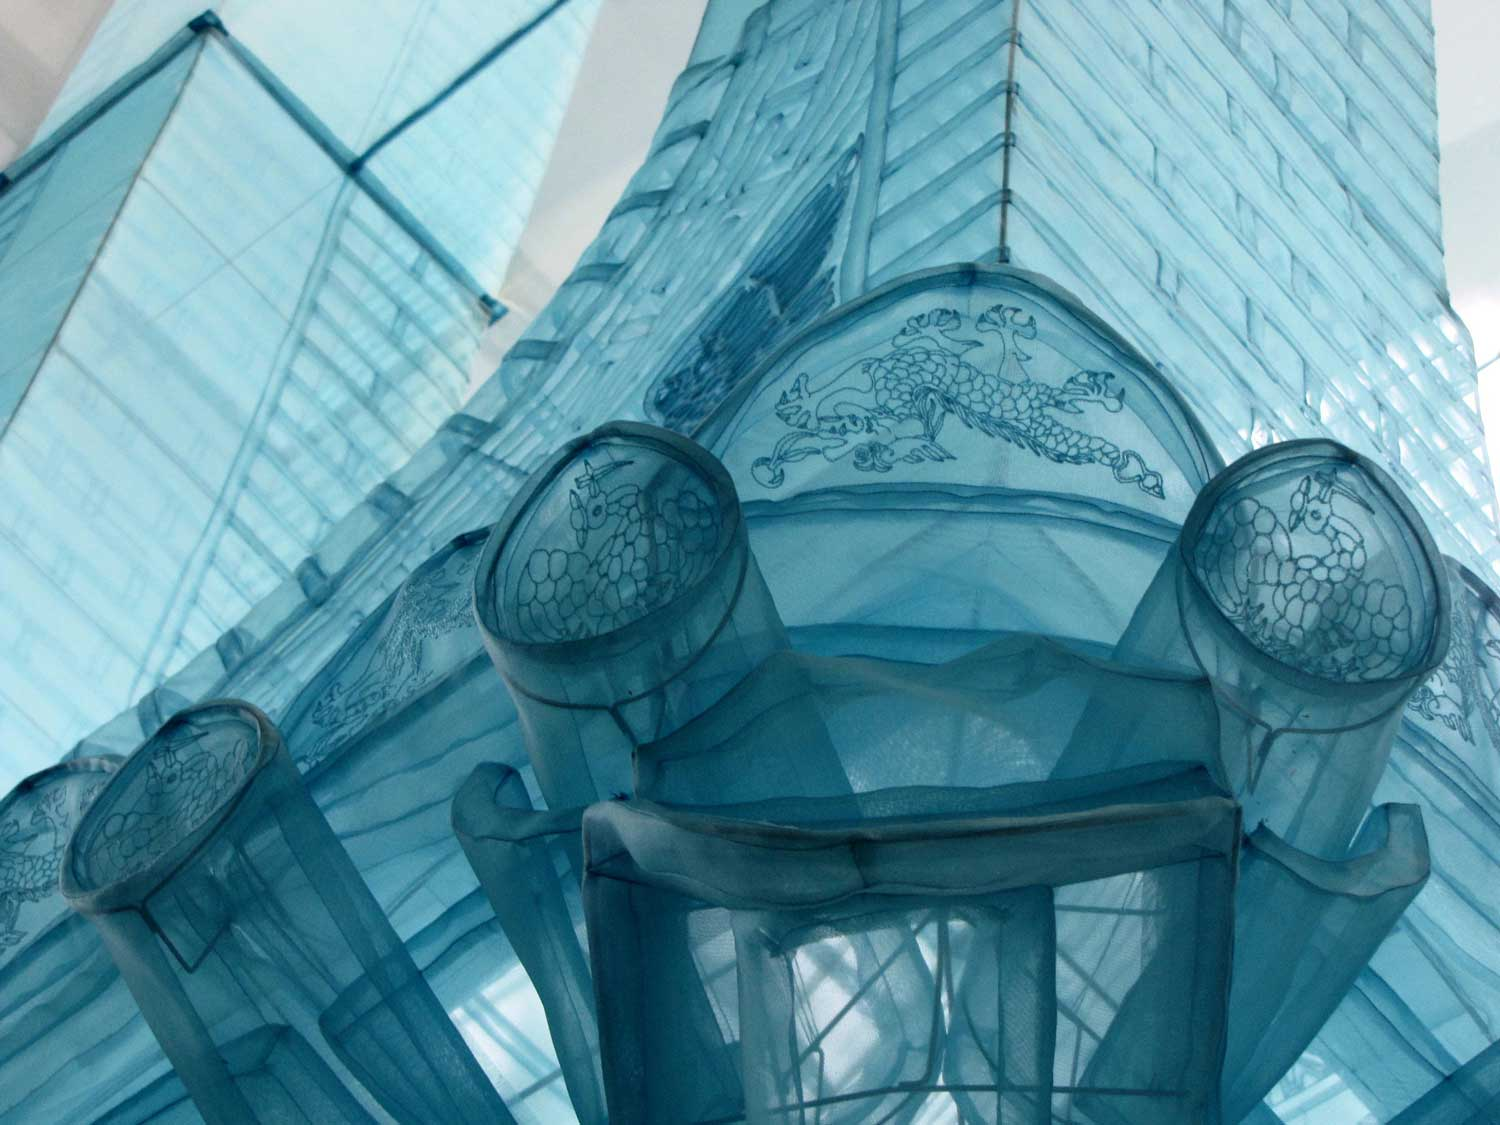 do ho suh sewn fabric sculptures archway detail